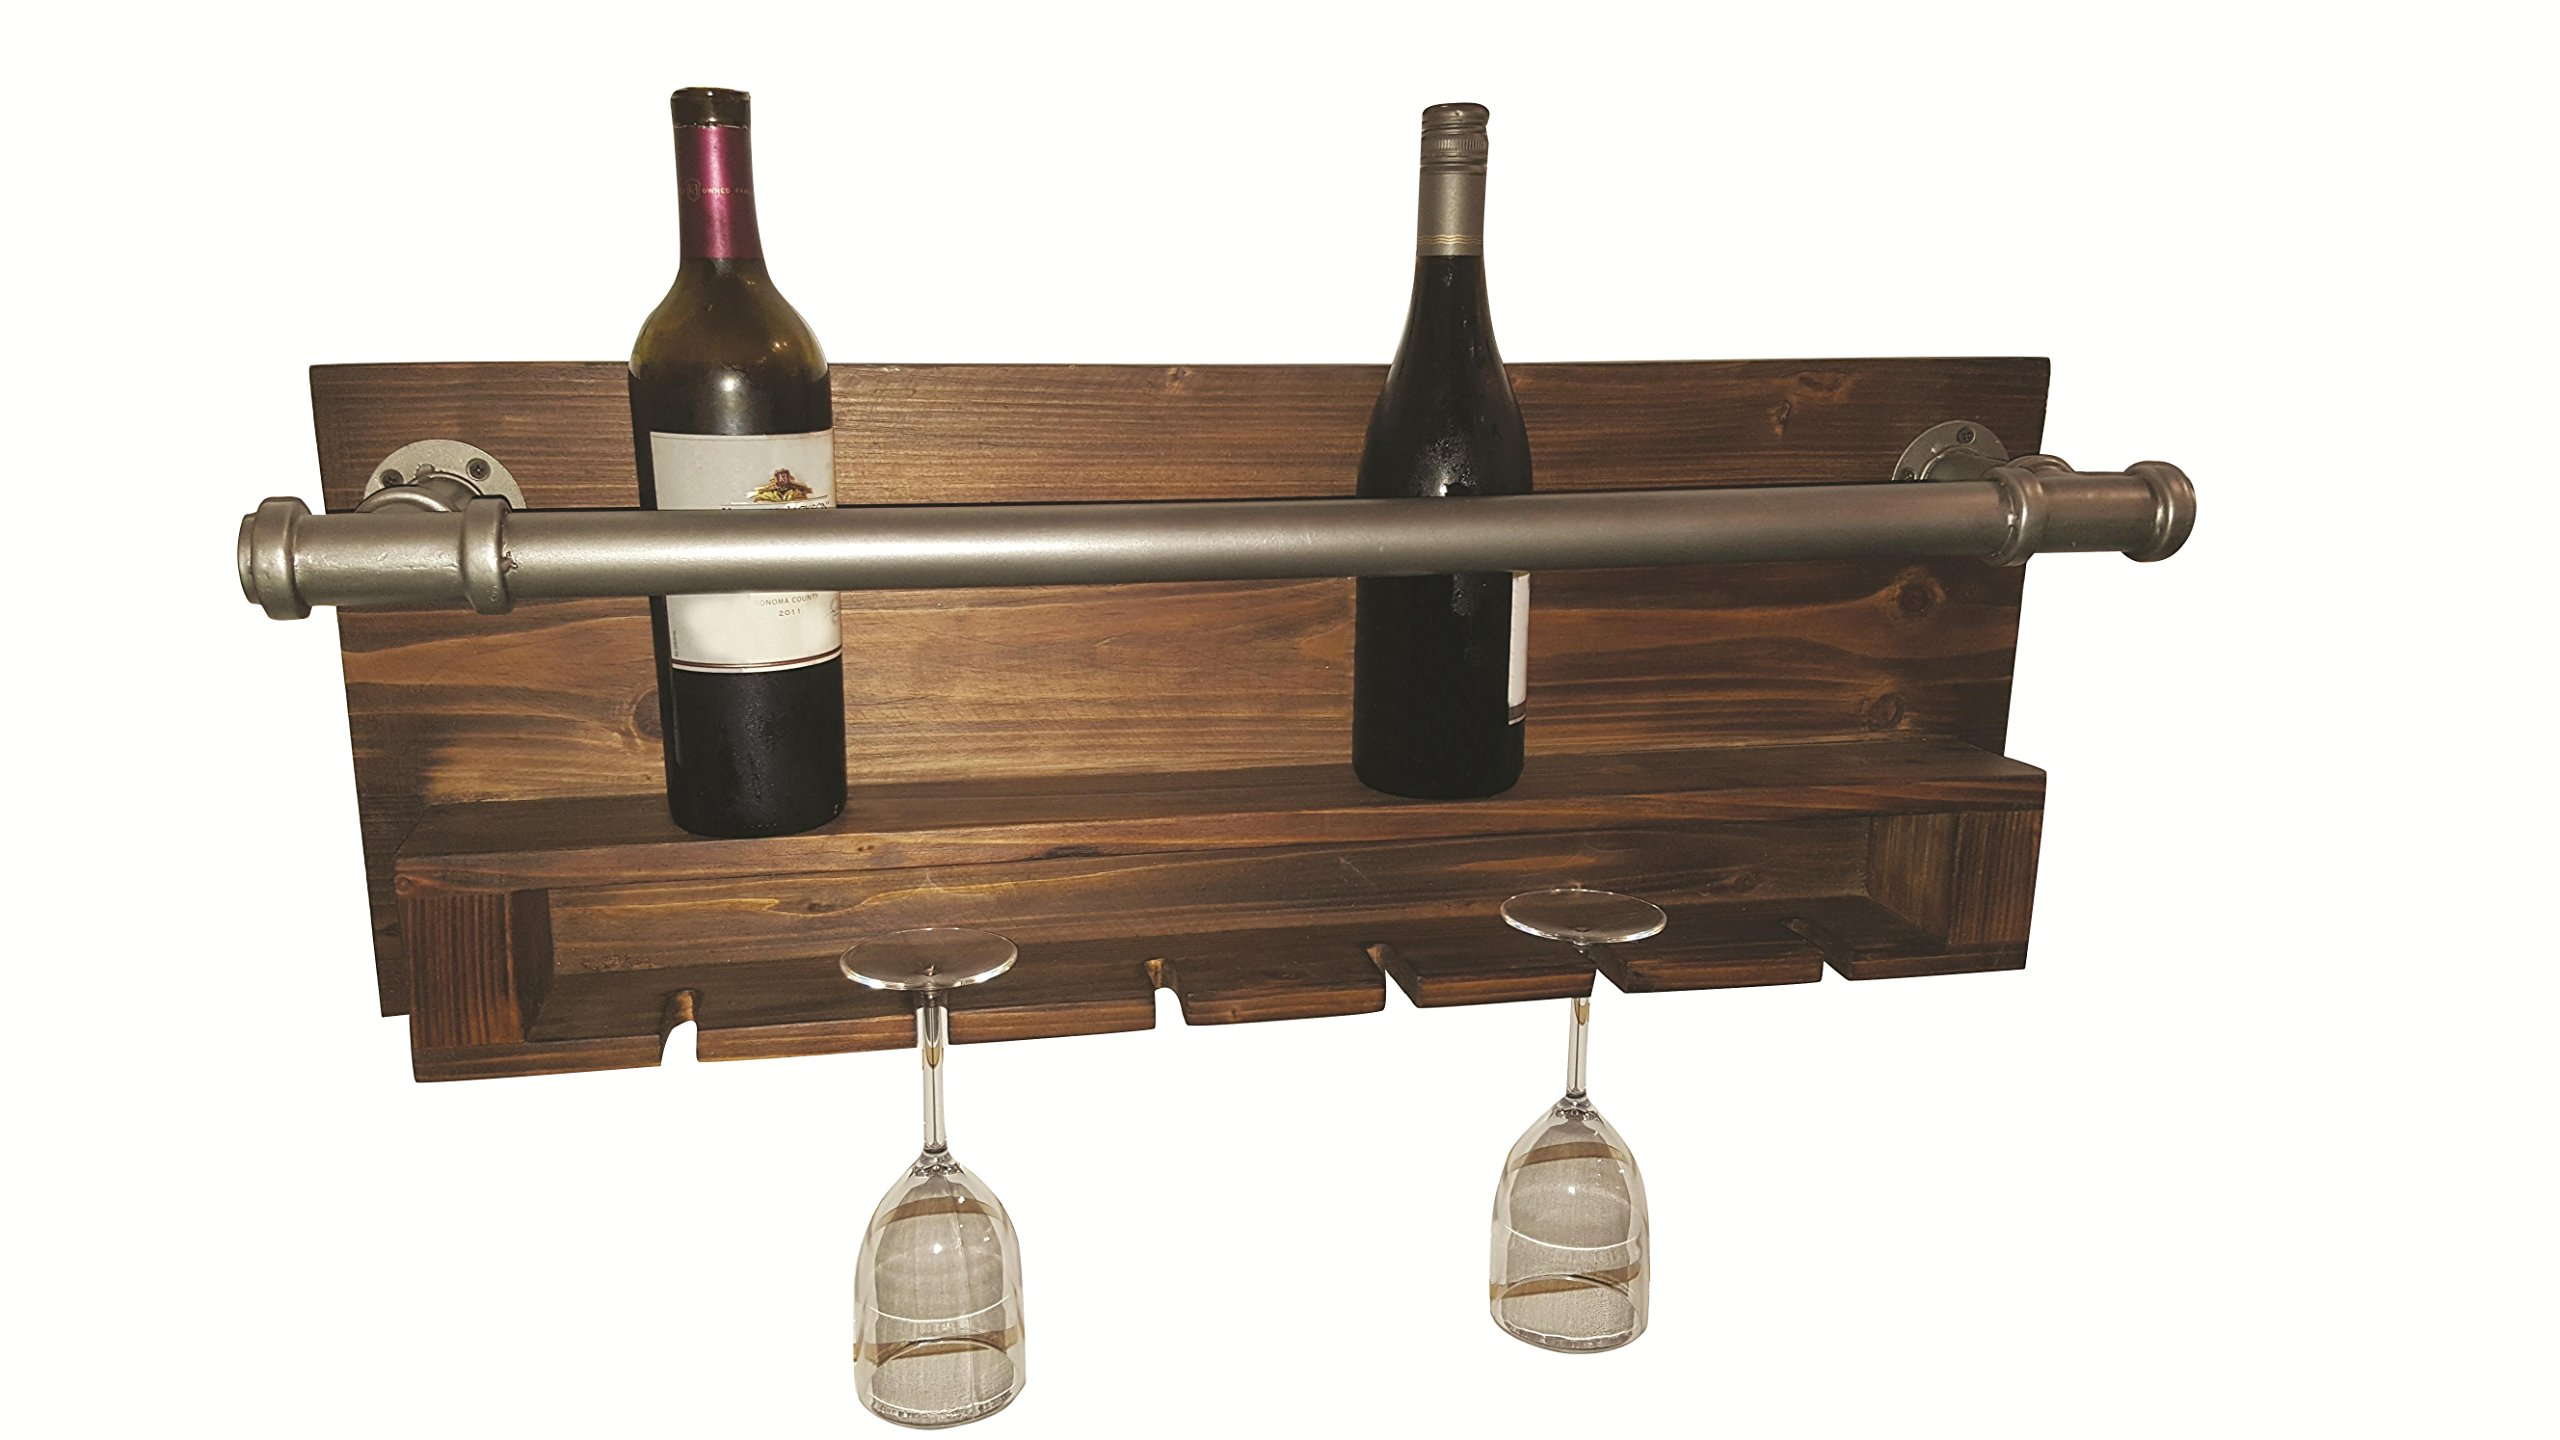 Home Source ''Industrial Wine Rack'' Wall Decor, 6'' x 32'' x 12'', Grey/Oak